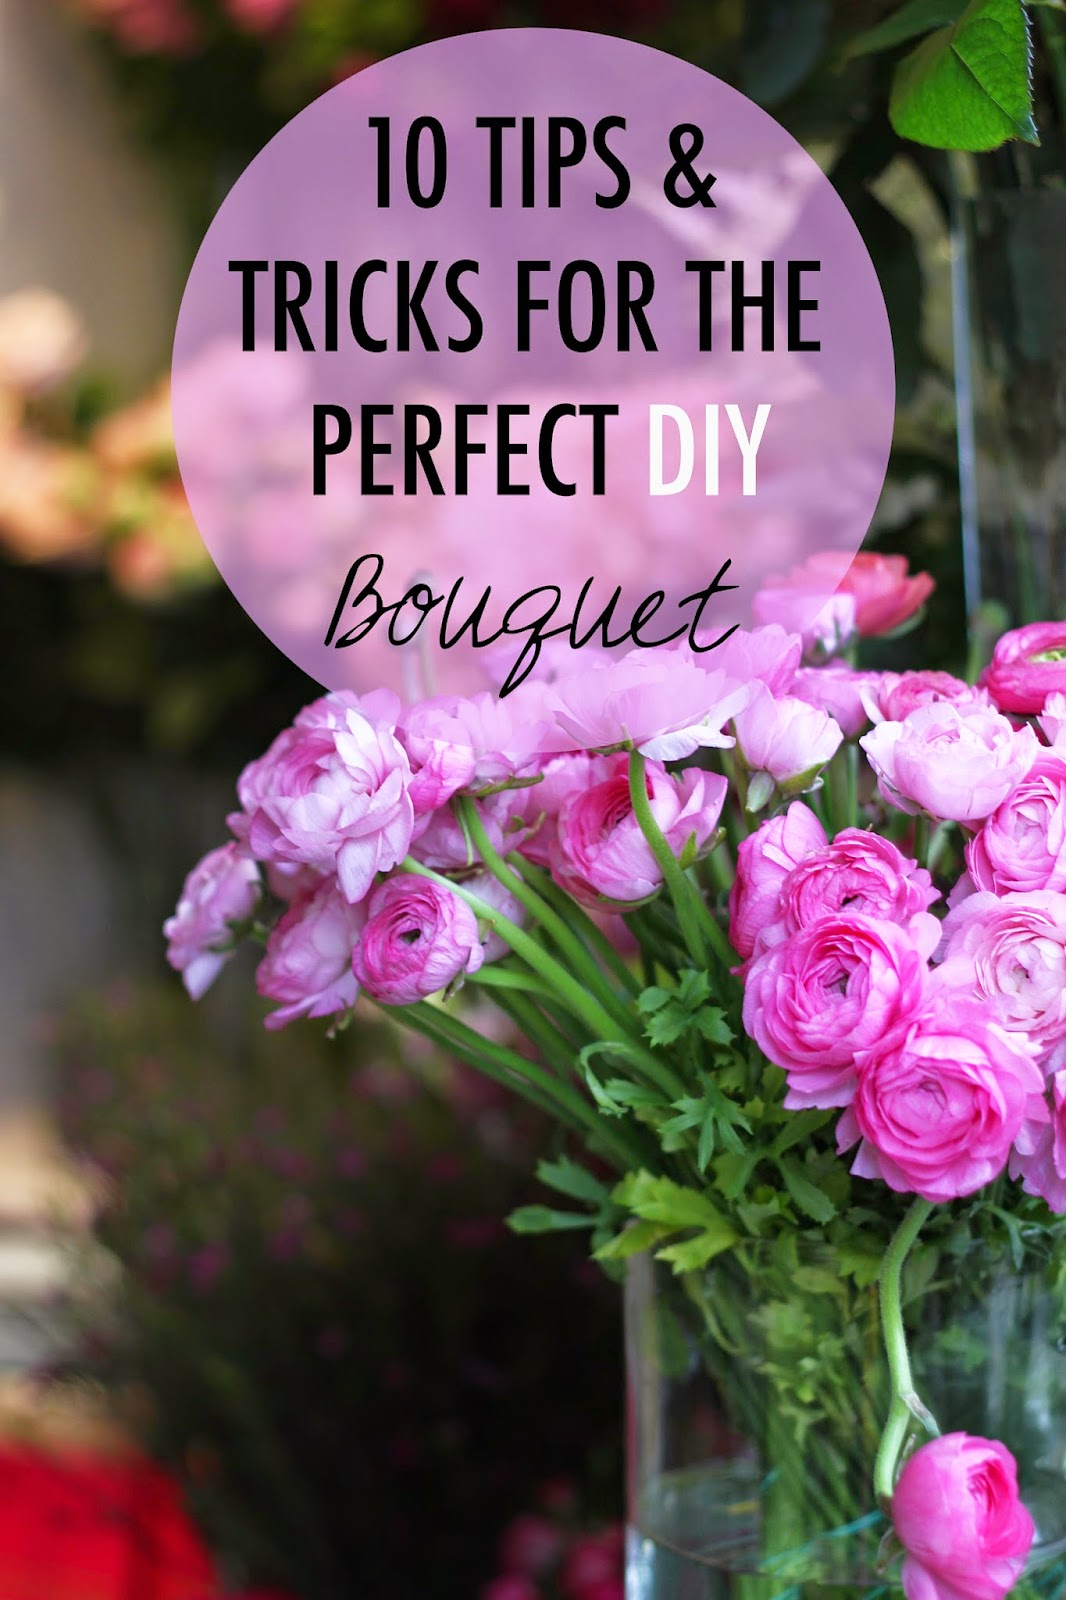 10 Tips & Tricks For The Perfect DIY Bouquet